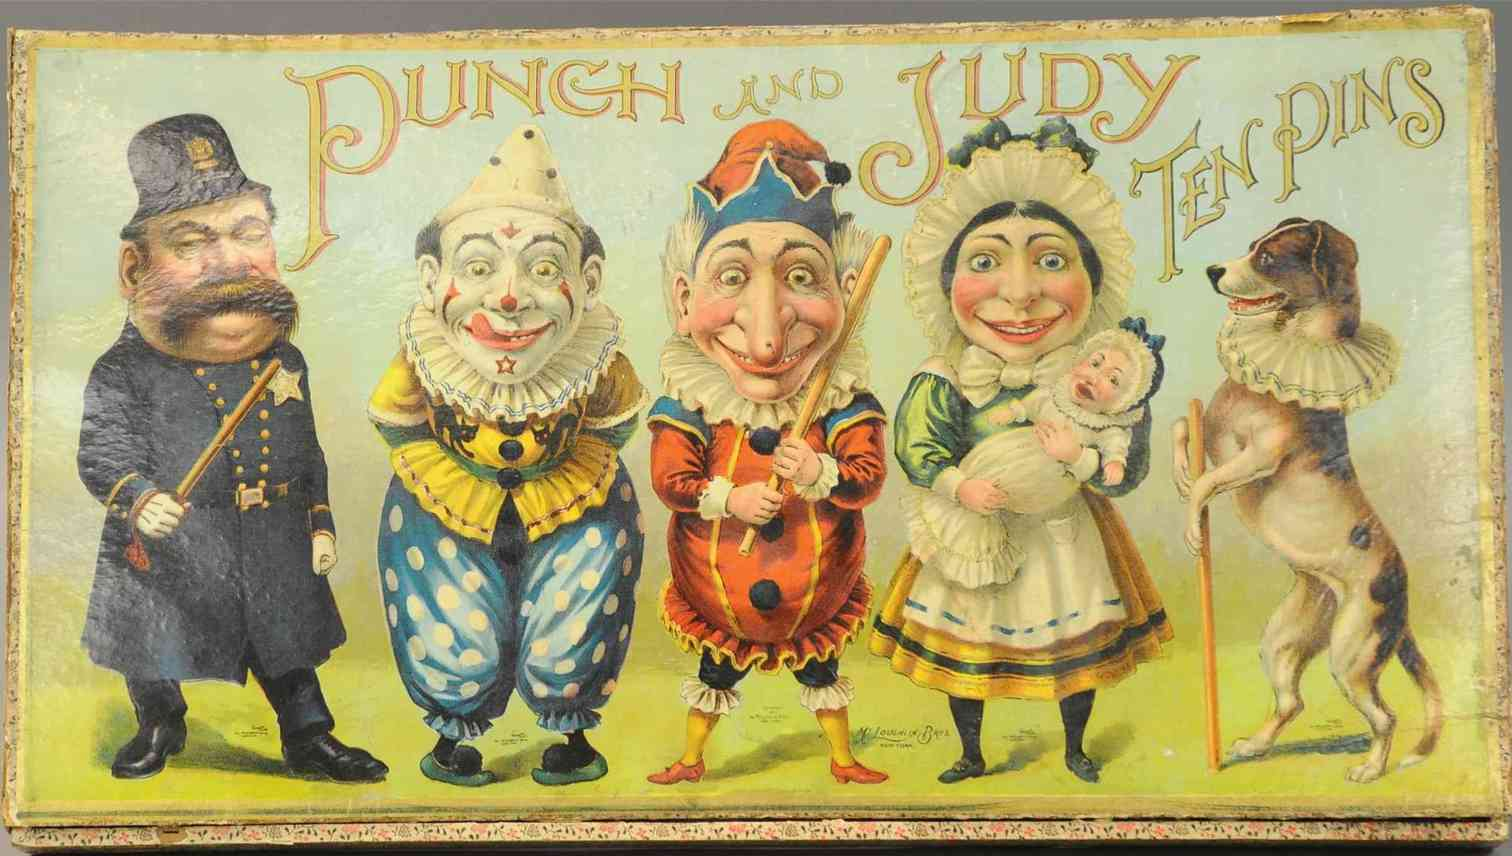 mcloughlin brothers wooden toy punch & judy ten pins game